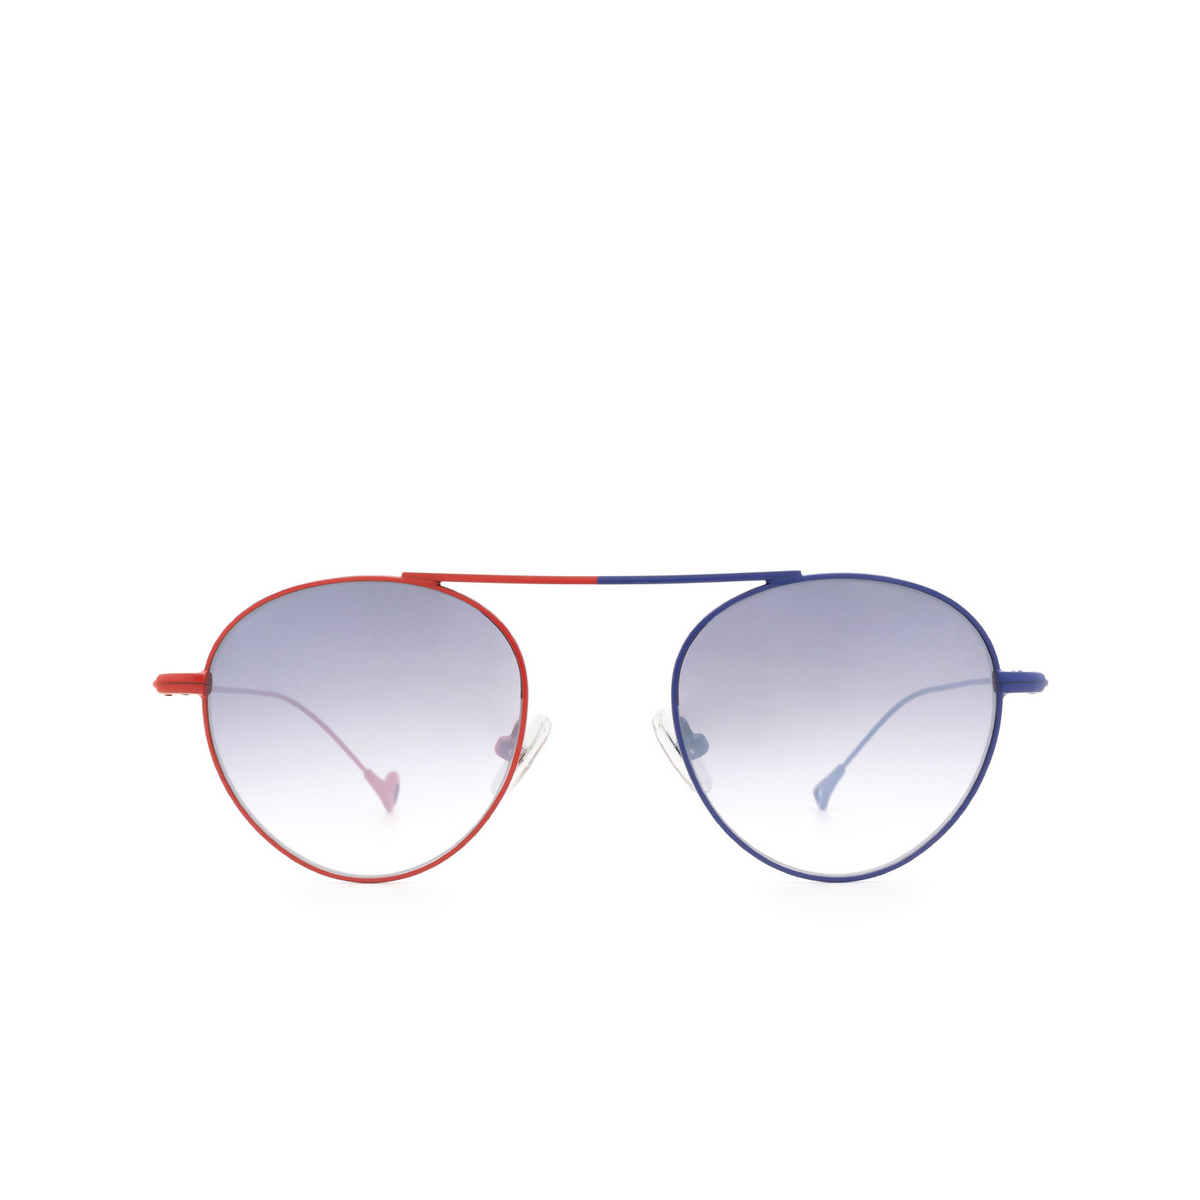 Eyepetizer® Round Sunglasses: En Bossa color Red & Blue C.18-27F - front view.